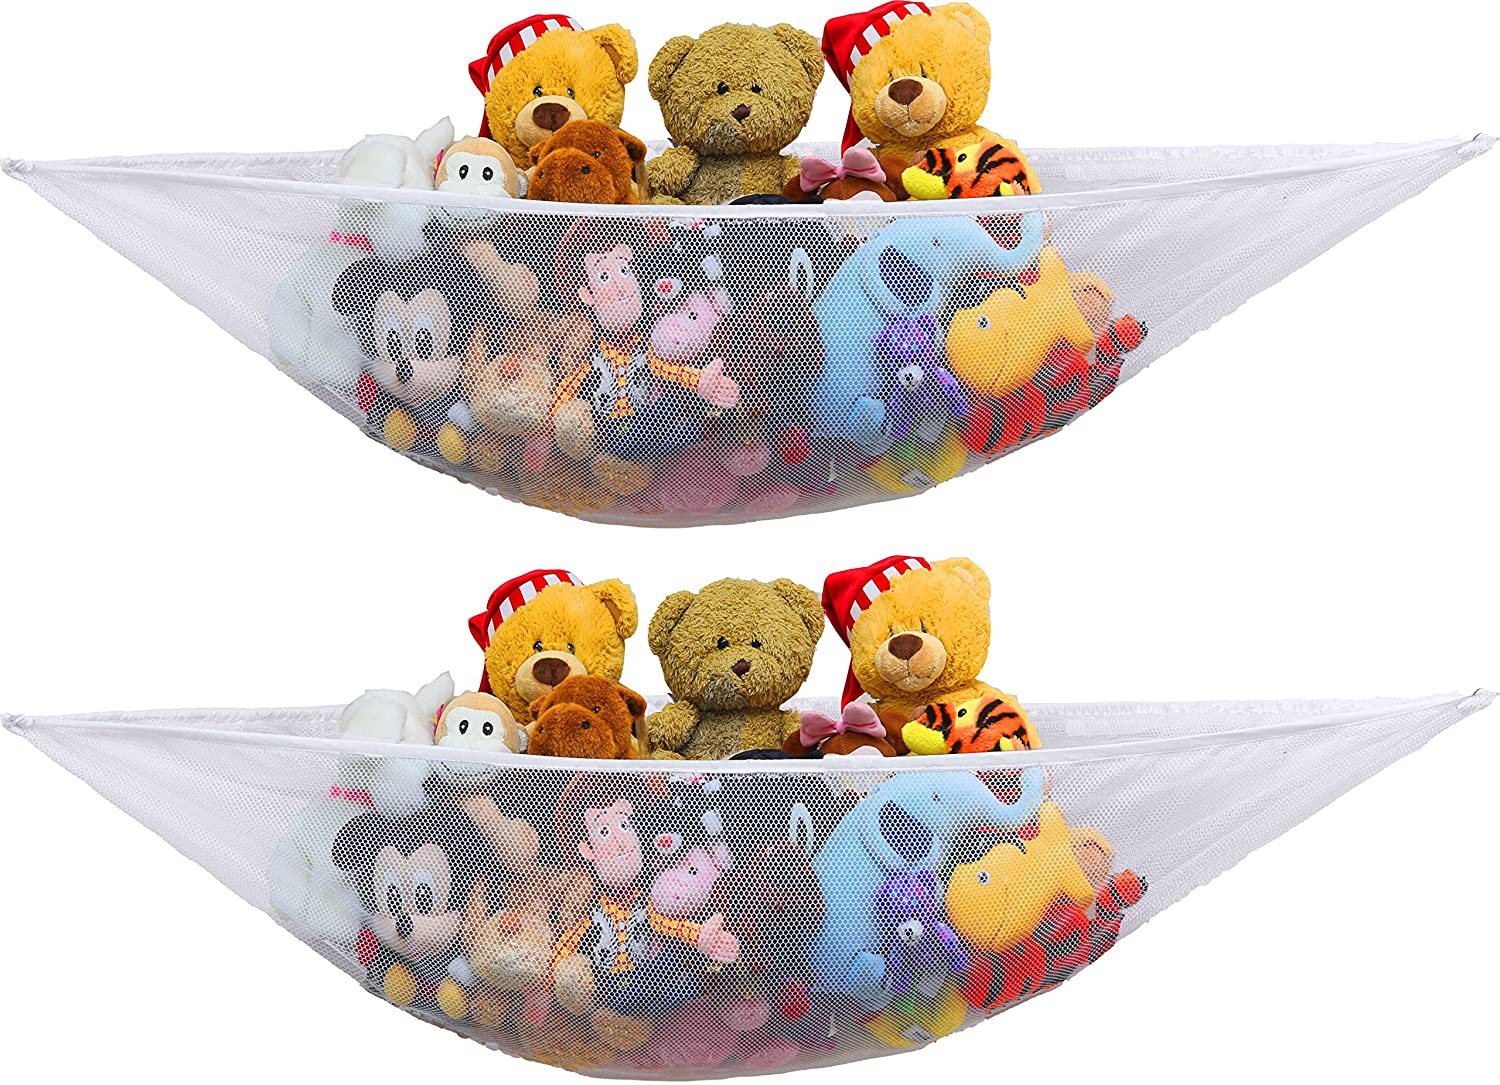 2 PK - Simplehouseware Stuffed Animal Jumbo Toy Storage Hammock 91a5Q52EwmL